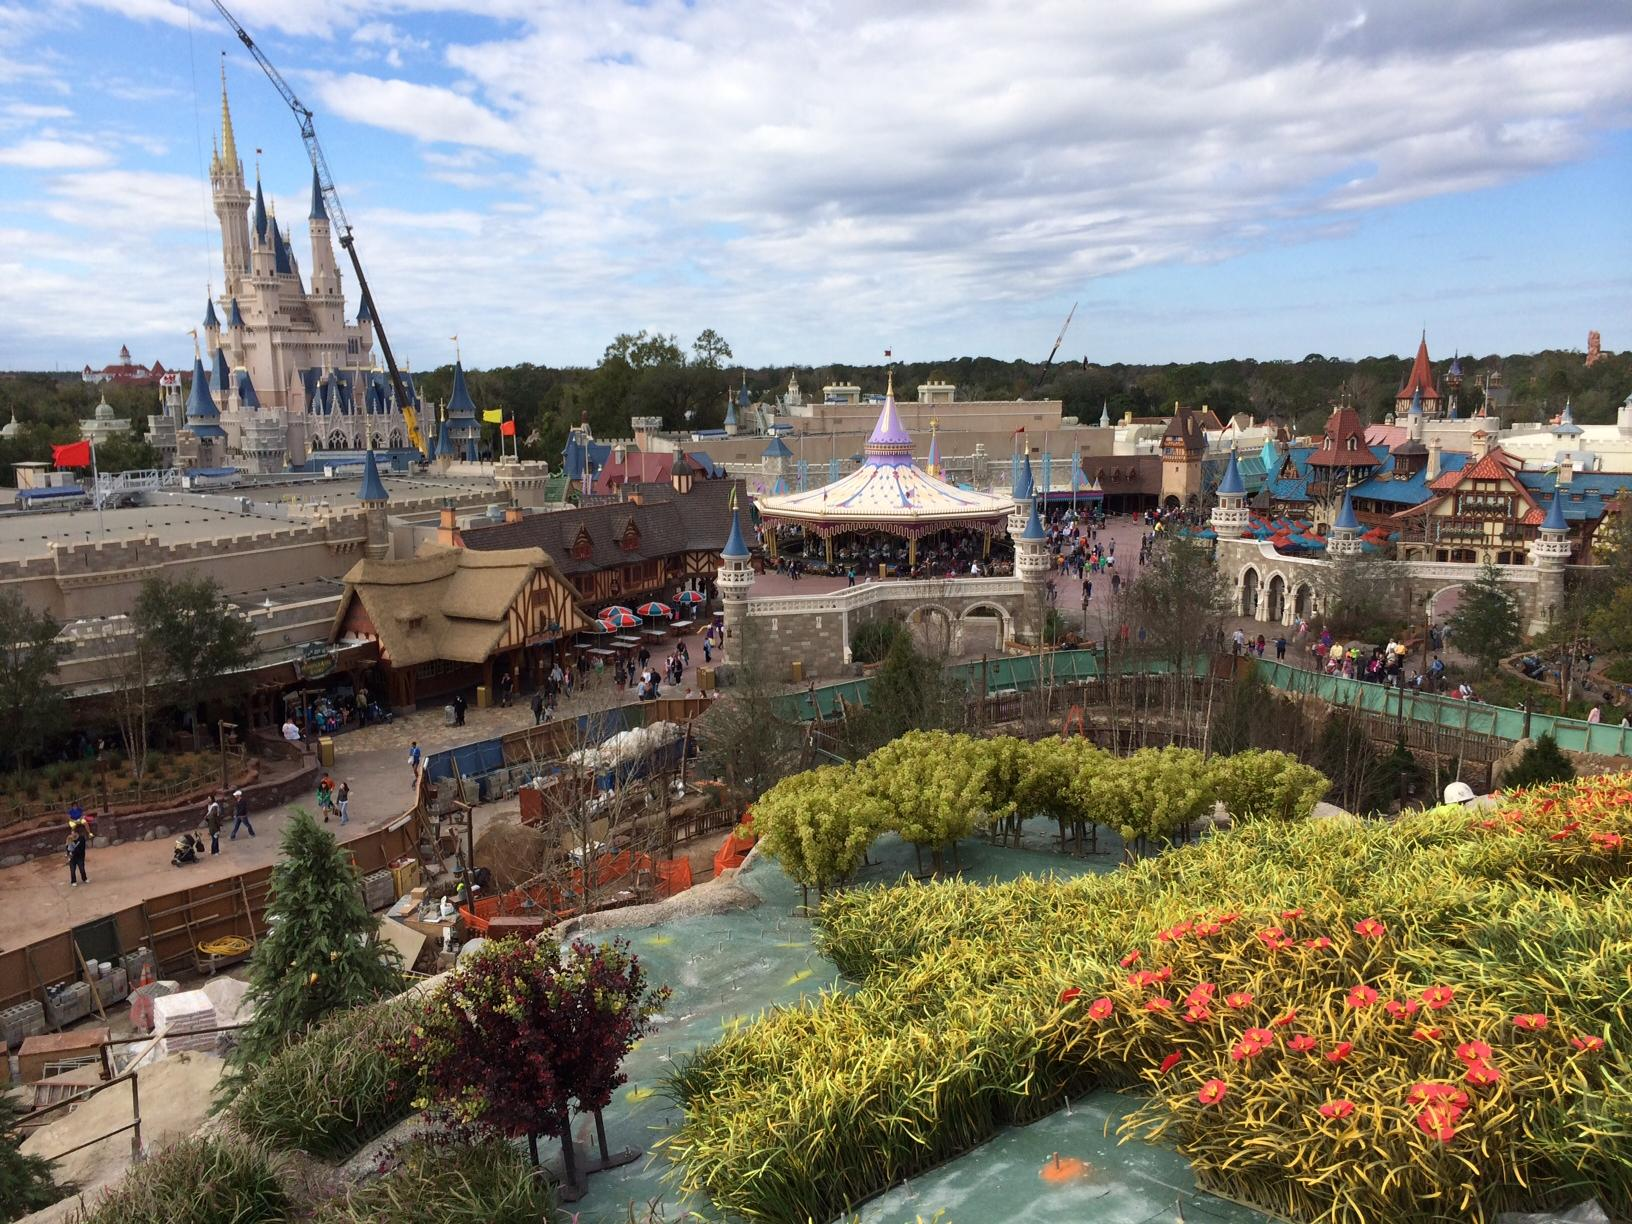 The view from the top of the Seven Dwarfs Mine Train coaster